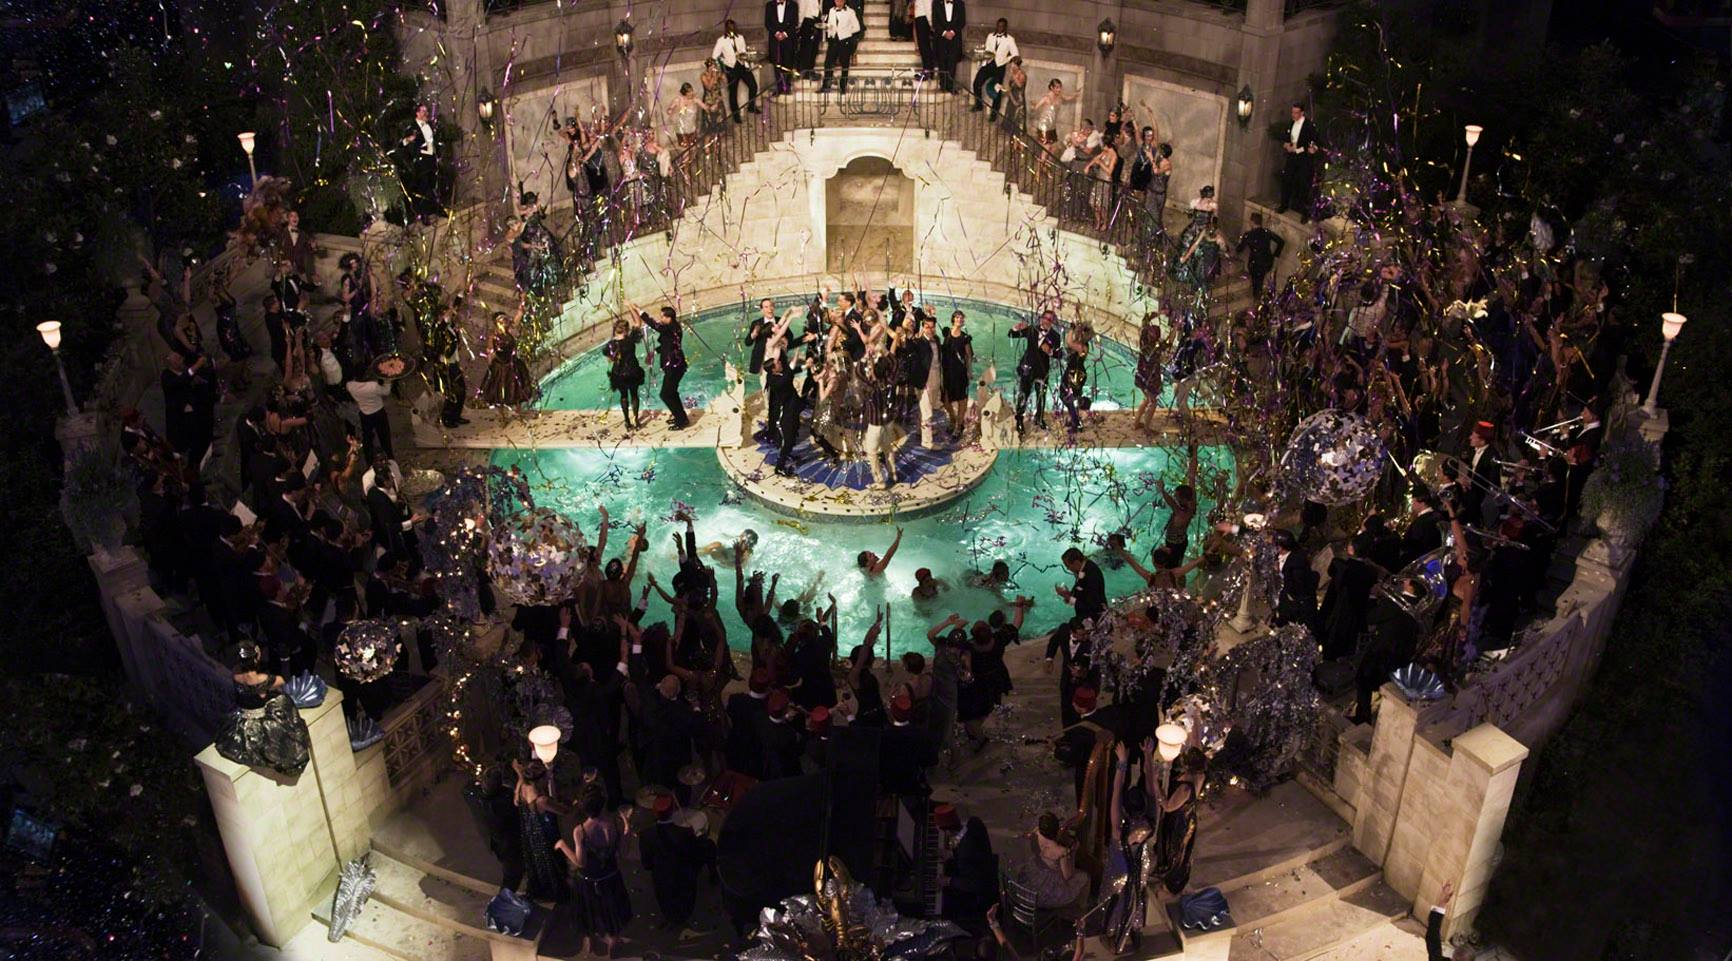 Party scene from The Great Gatsby movie.